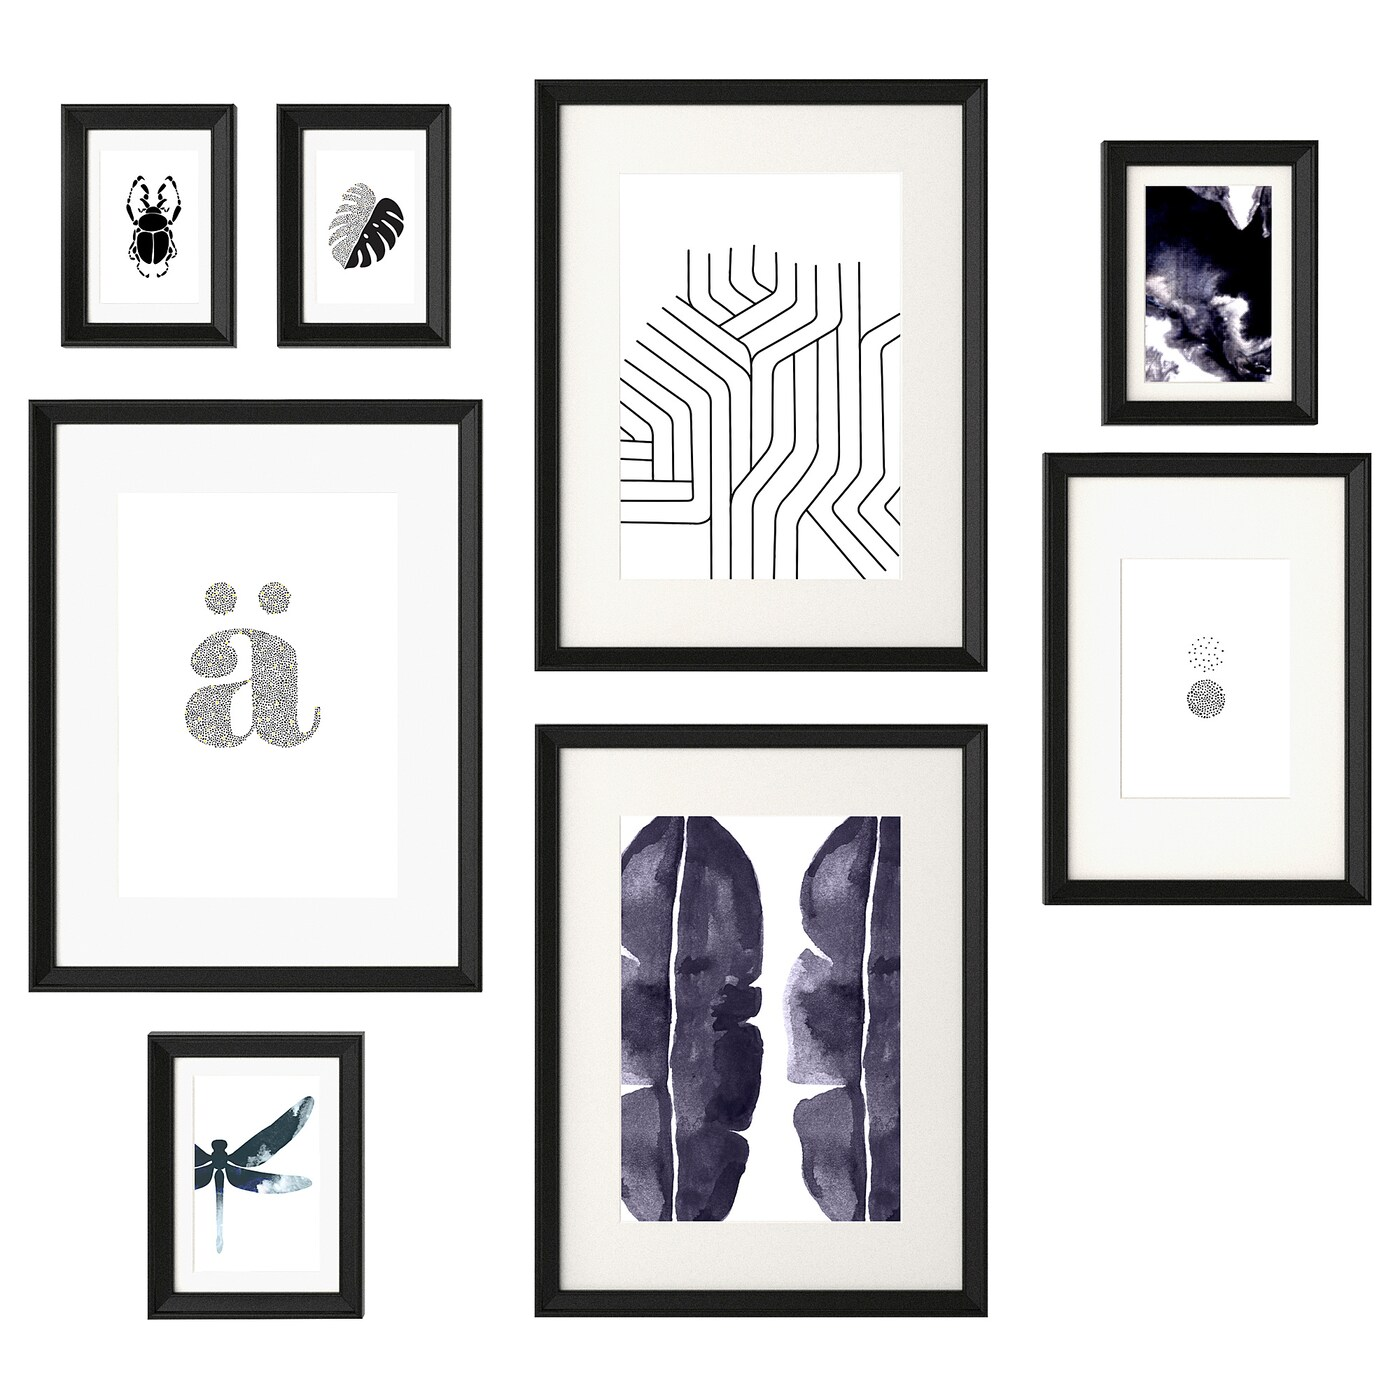 Ready To Hang Art - Canvas Prints, Framed Art & More | IKEA